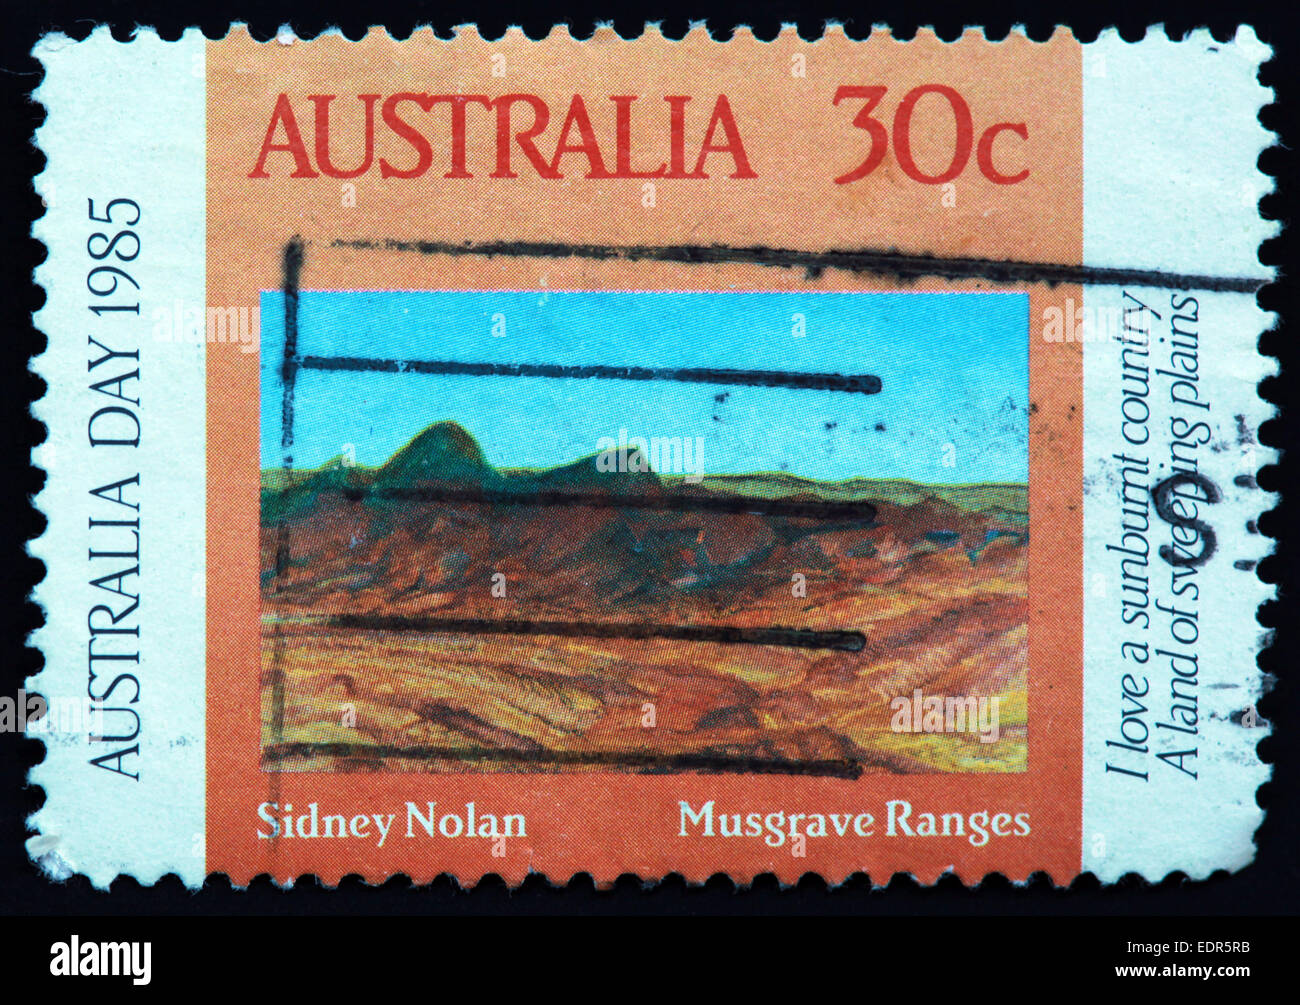 Used and postmarked Australia / Austrailian Stamp 30c day 1985 Sidney Nolan Musgrave Ranges - Stock Image